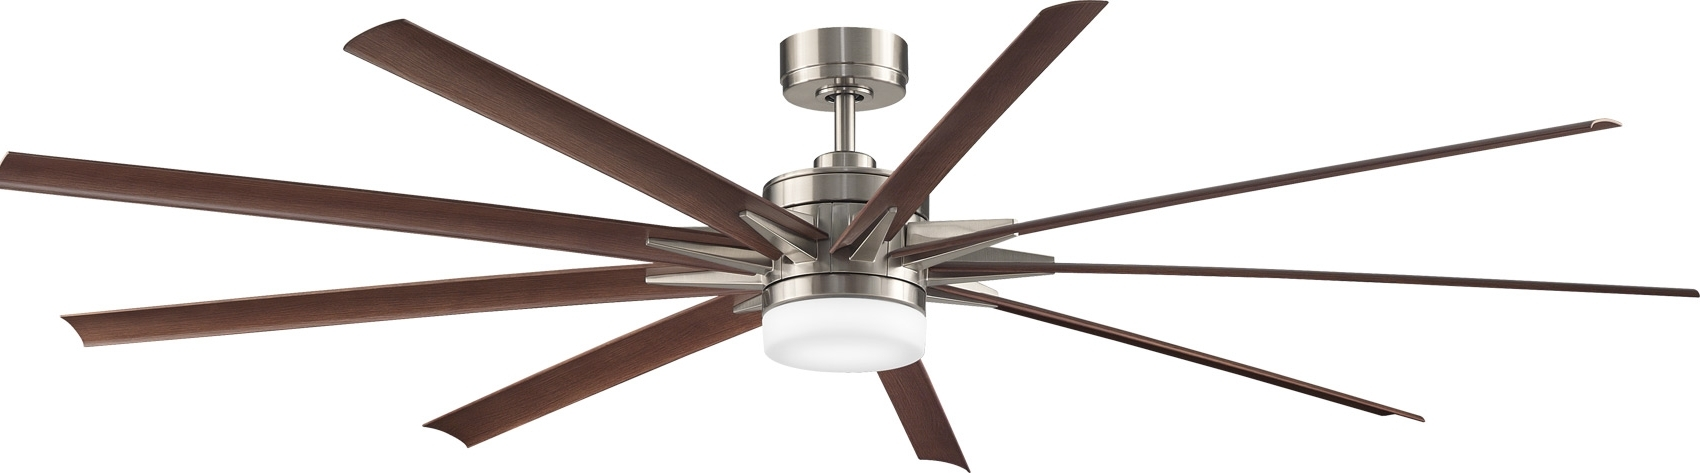 "Odyn 84"" Large Ceiling Fanfanimation Pertaining To Latest High Volume Outdoor Ceiling Fans (View 14 of 20)"